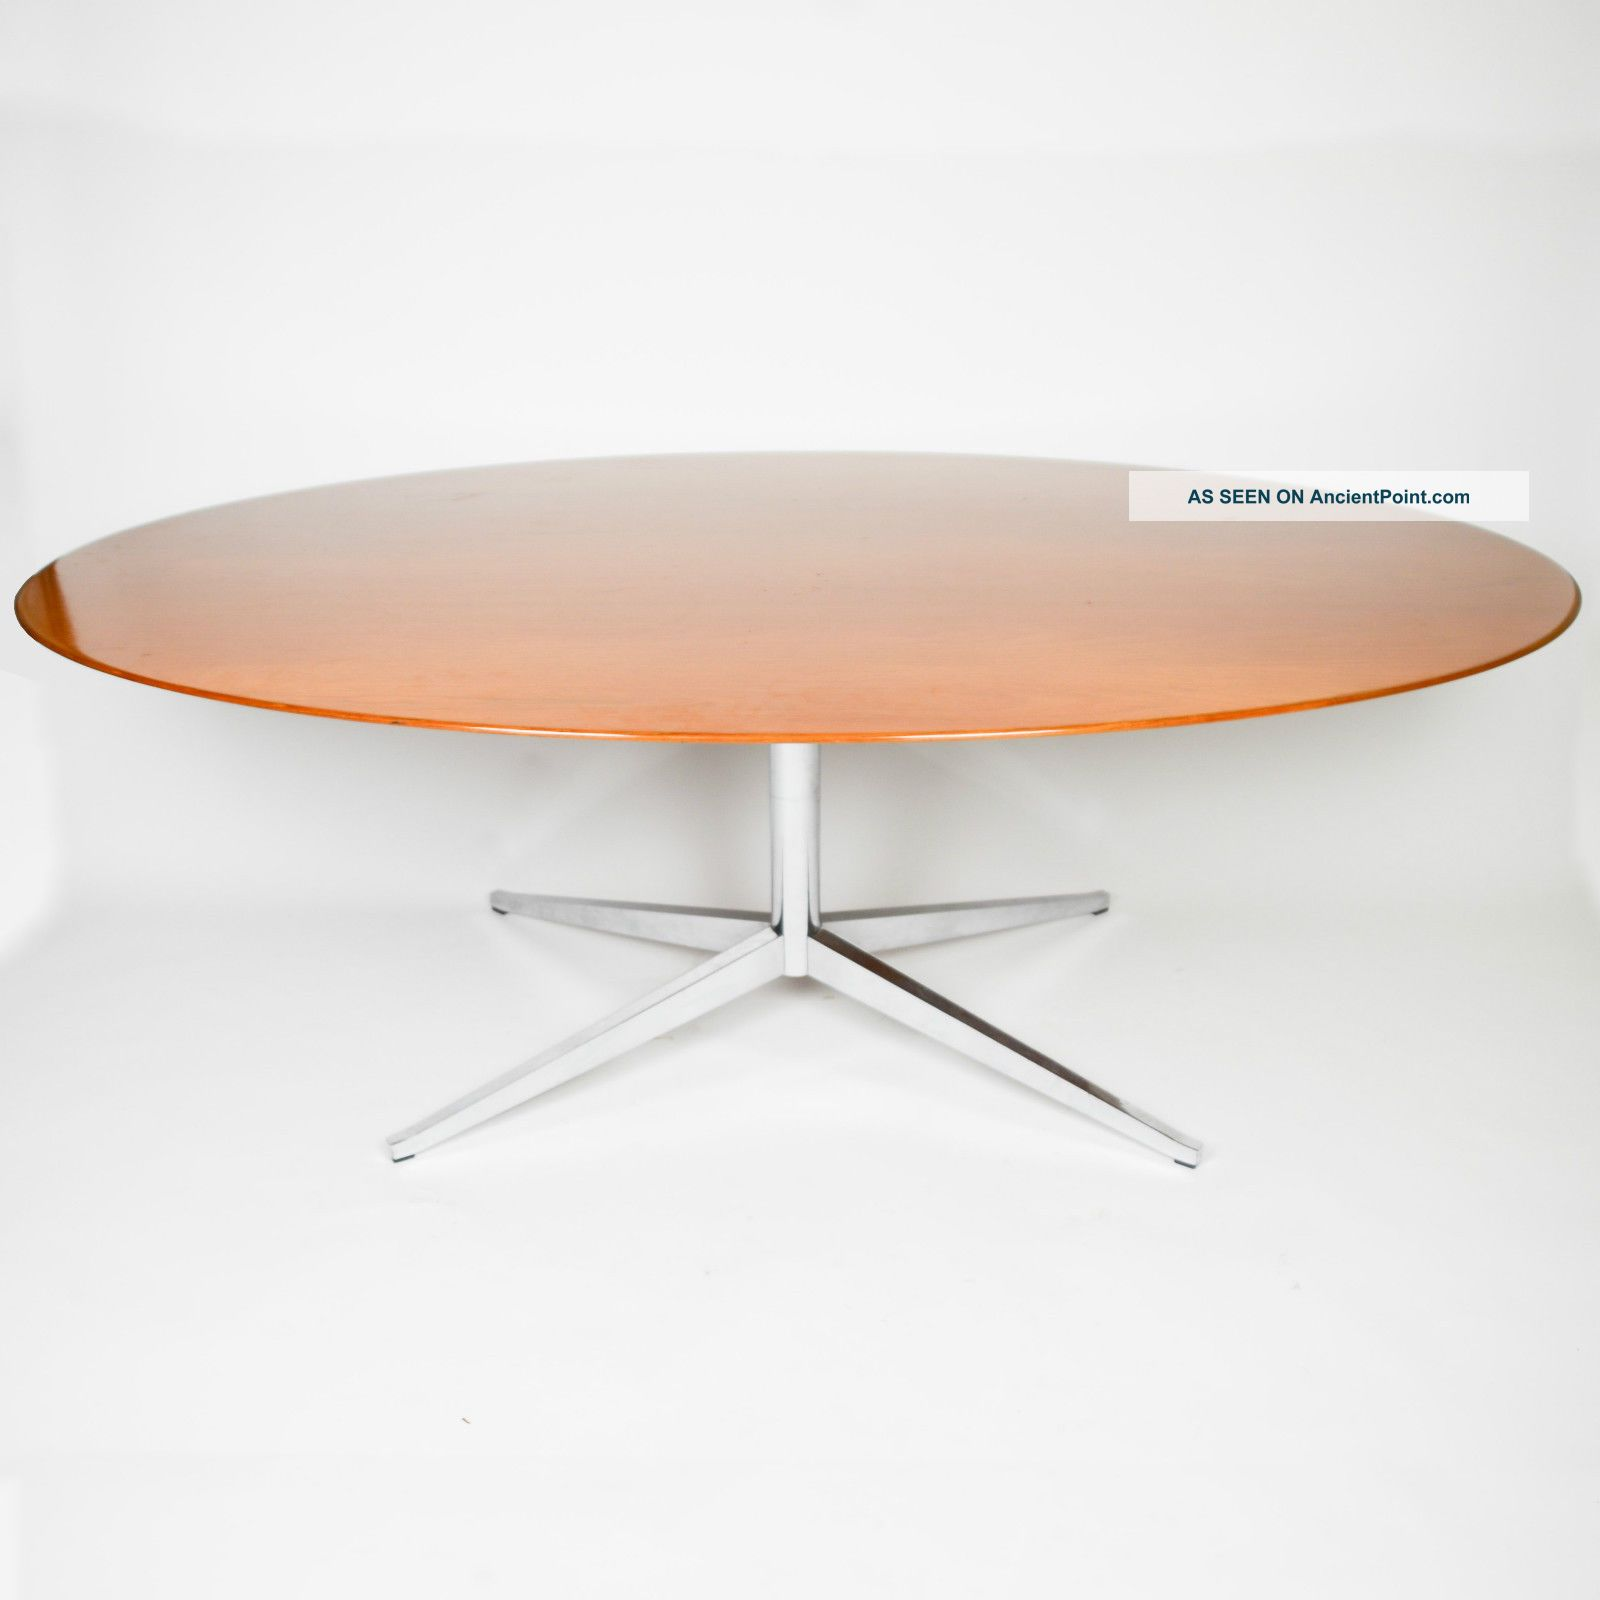 Vintage Florence Knoll 78 Inch Conference / Dining Table Teak Shape Mid-Century Modernism photo